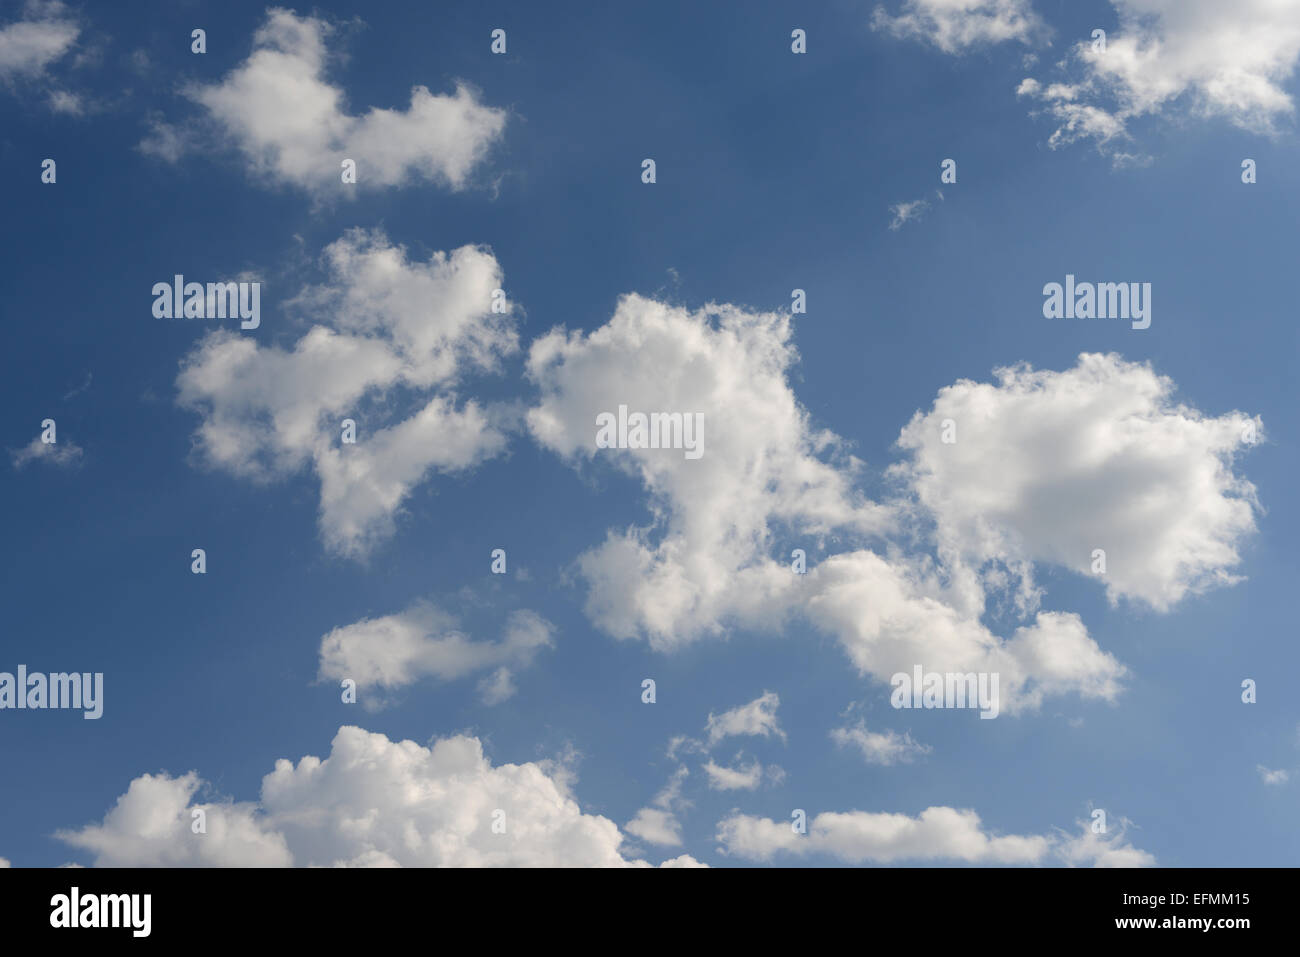 Beautiful cloudscape - fluffy white clouds in a sunny blue sky. - Stock Image